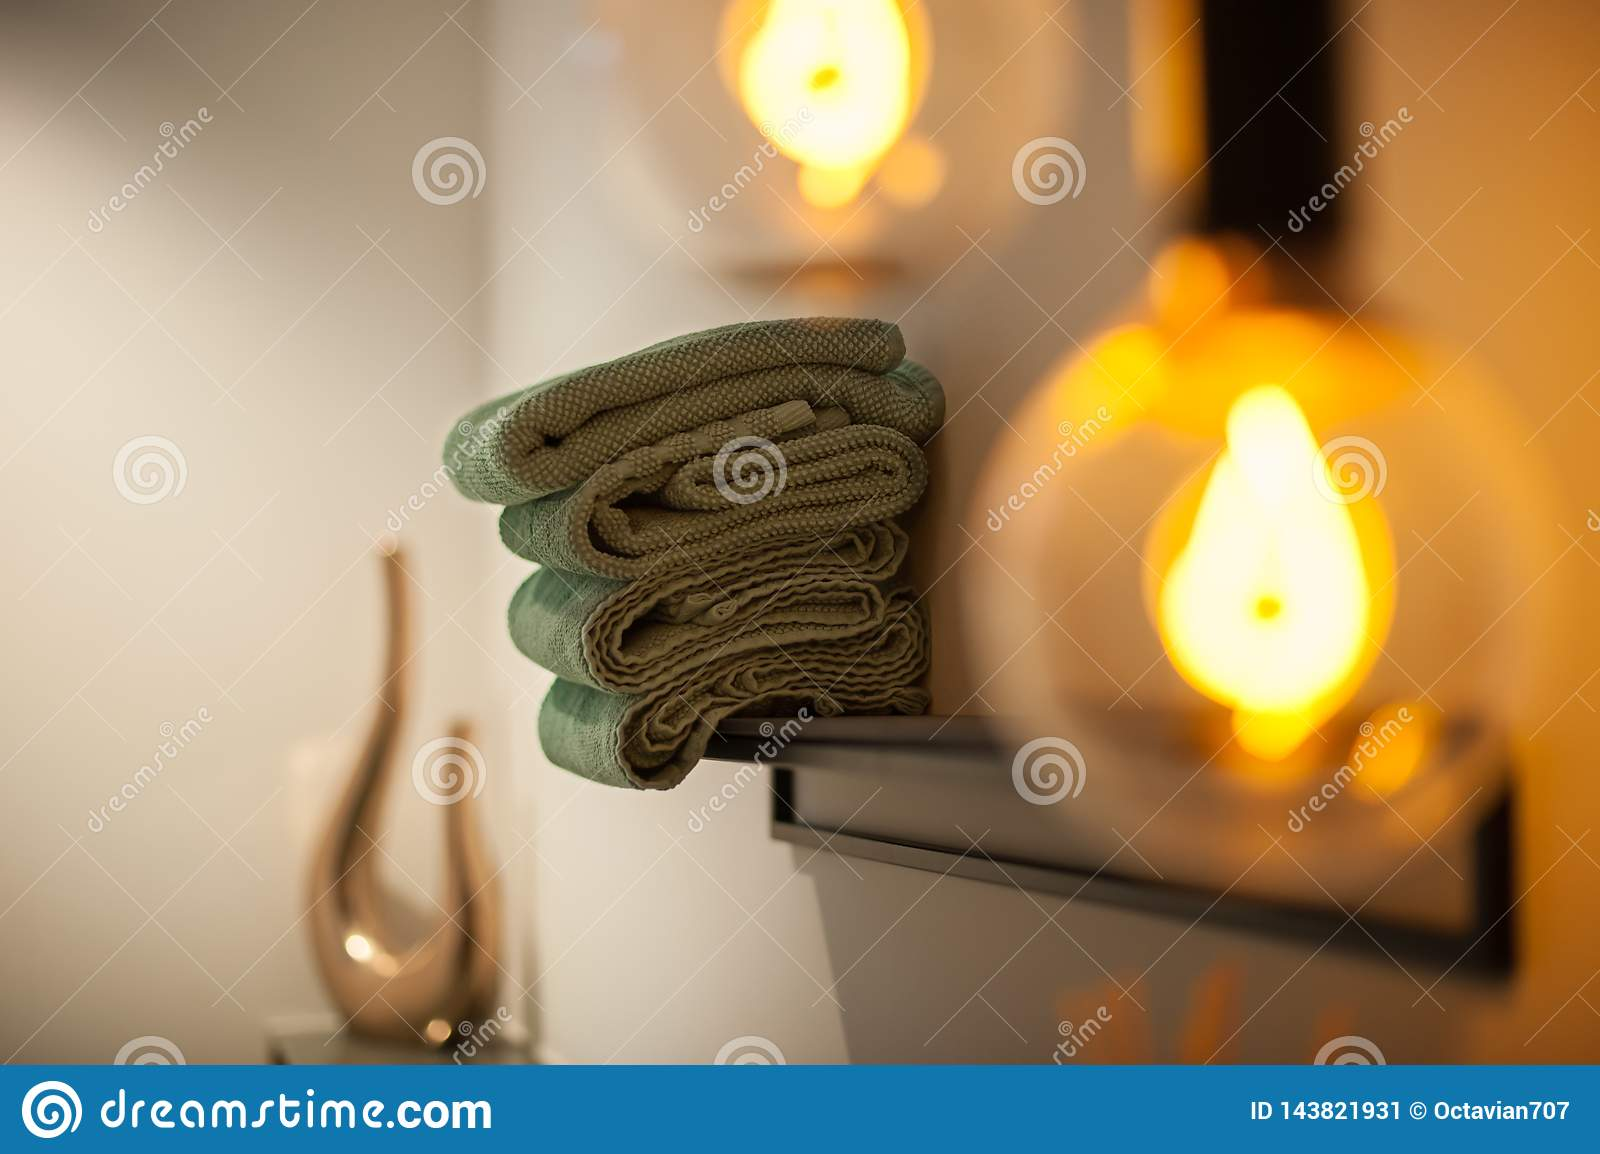 Bath interior with towels and lamp